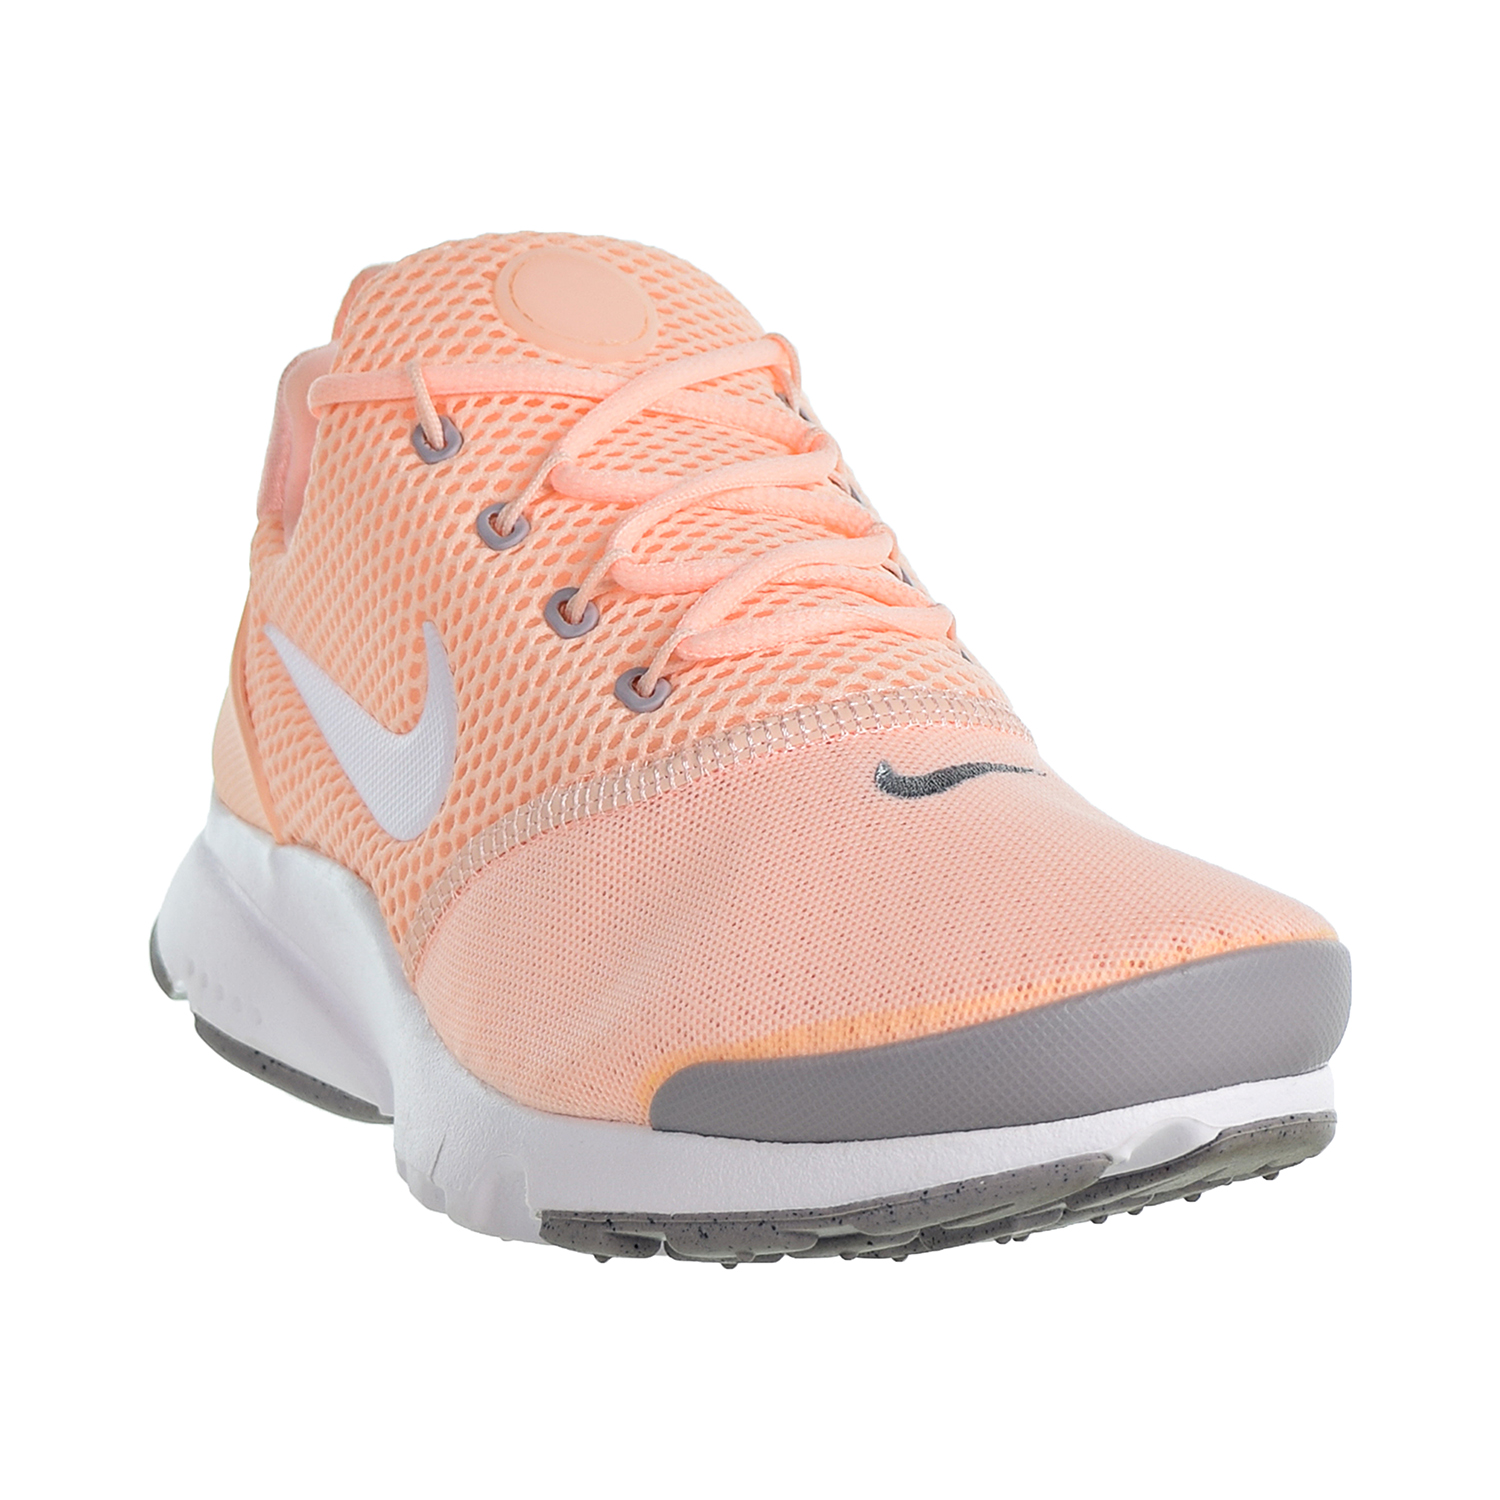 7c2d81293cac8 Nike Presto Fly Big Kids' Shoes Crimson Tint/White 913967-800 | eBay